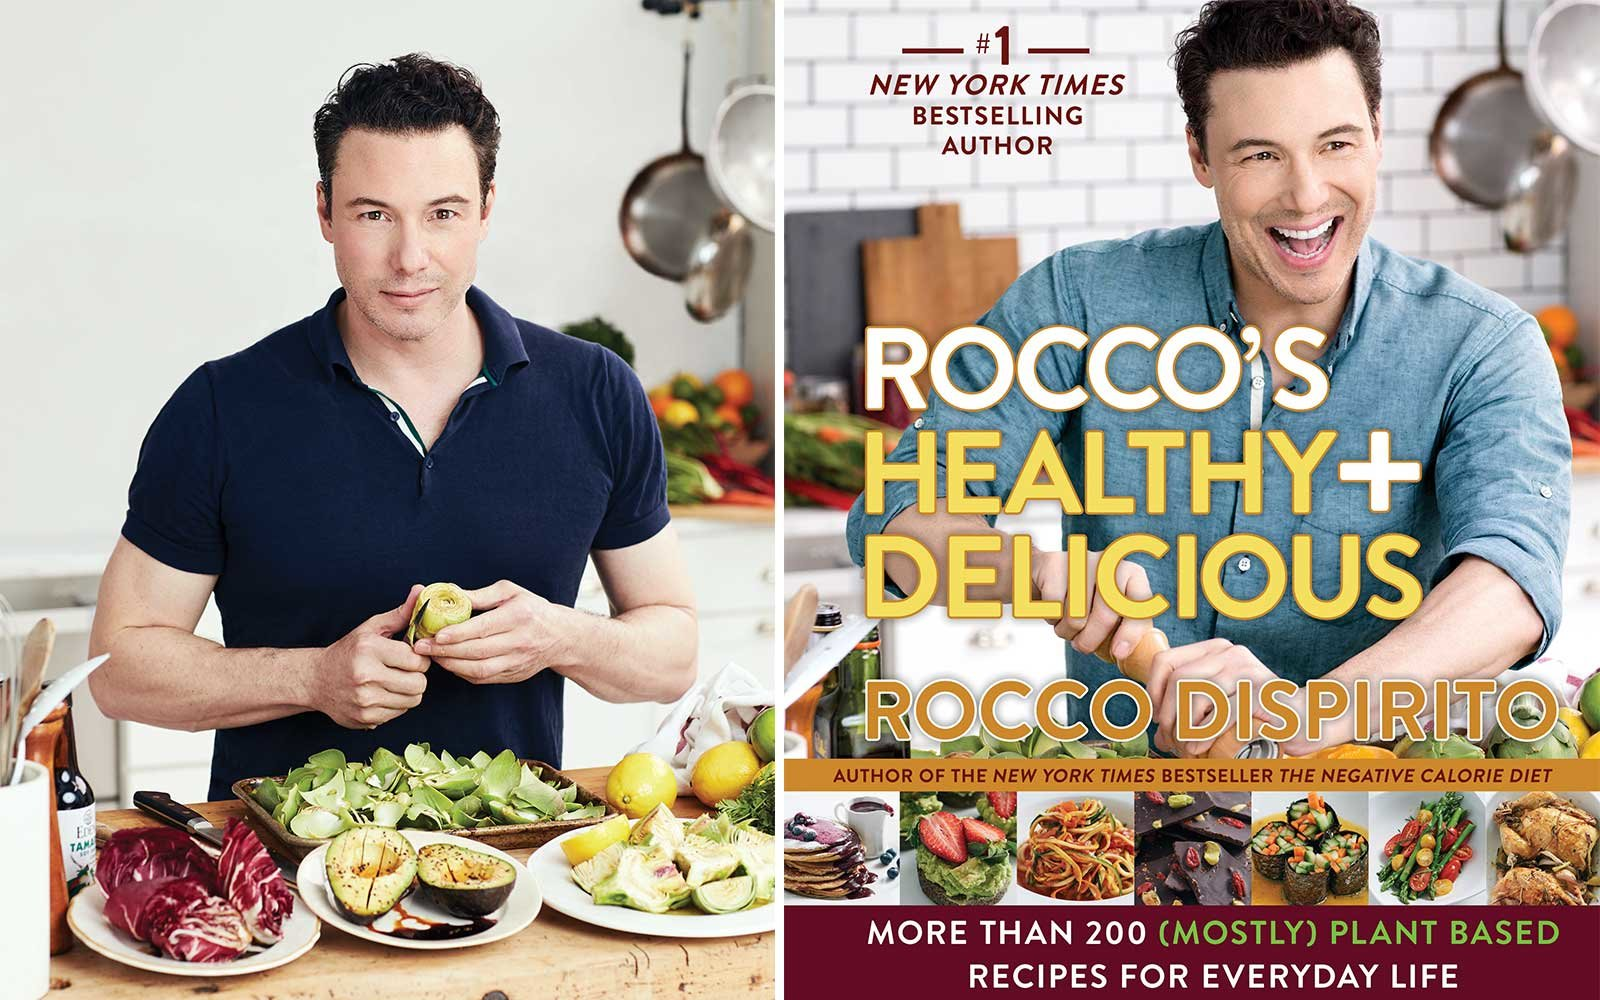 Chef Rocco Dispirito